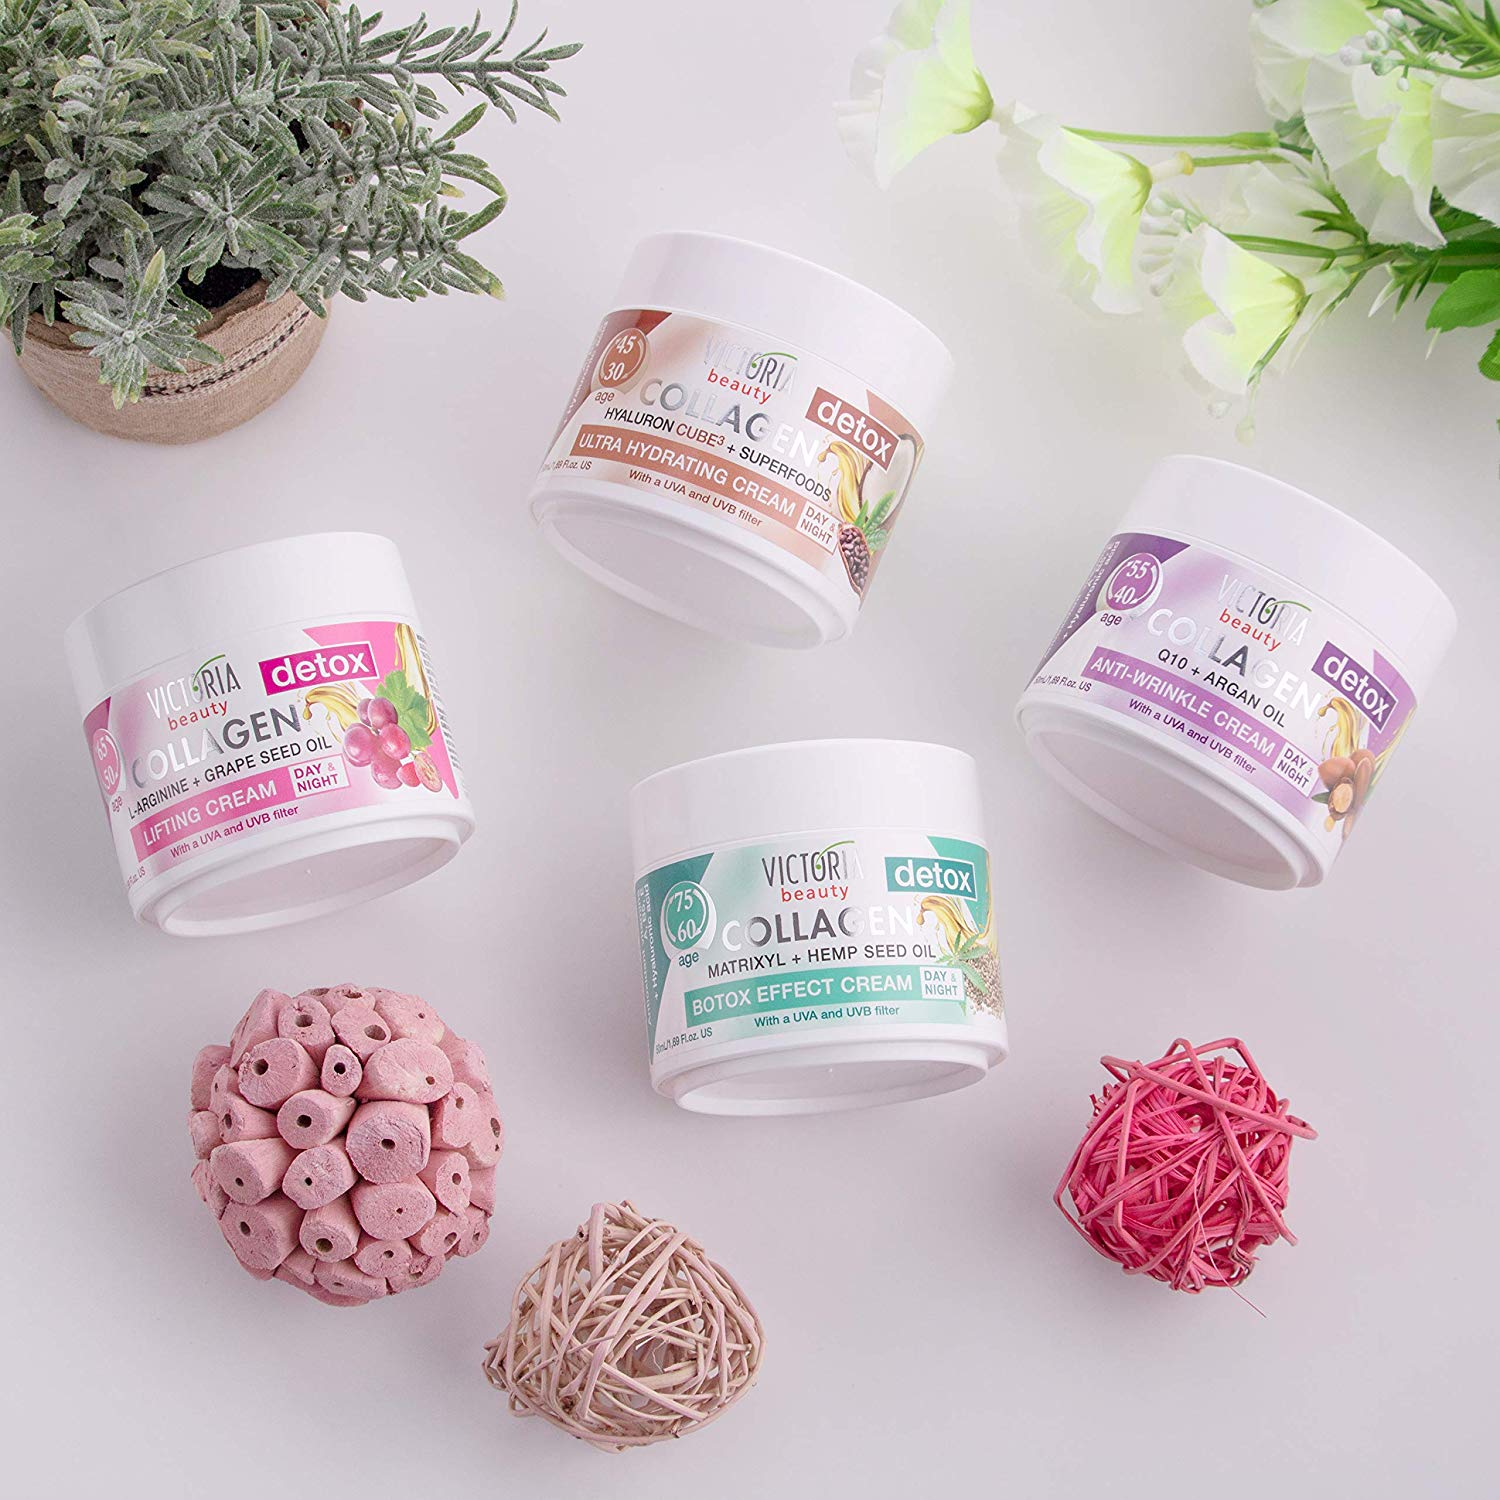 vbcollagen6